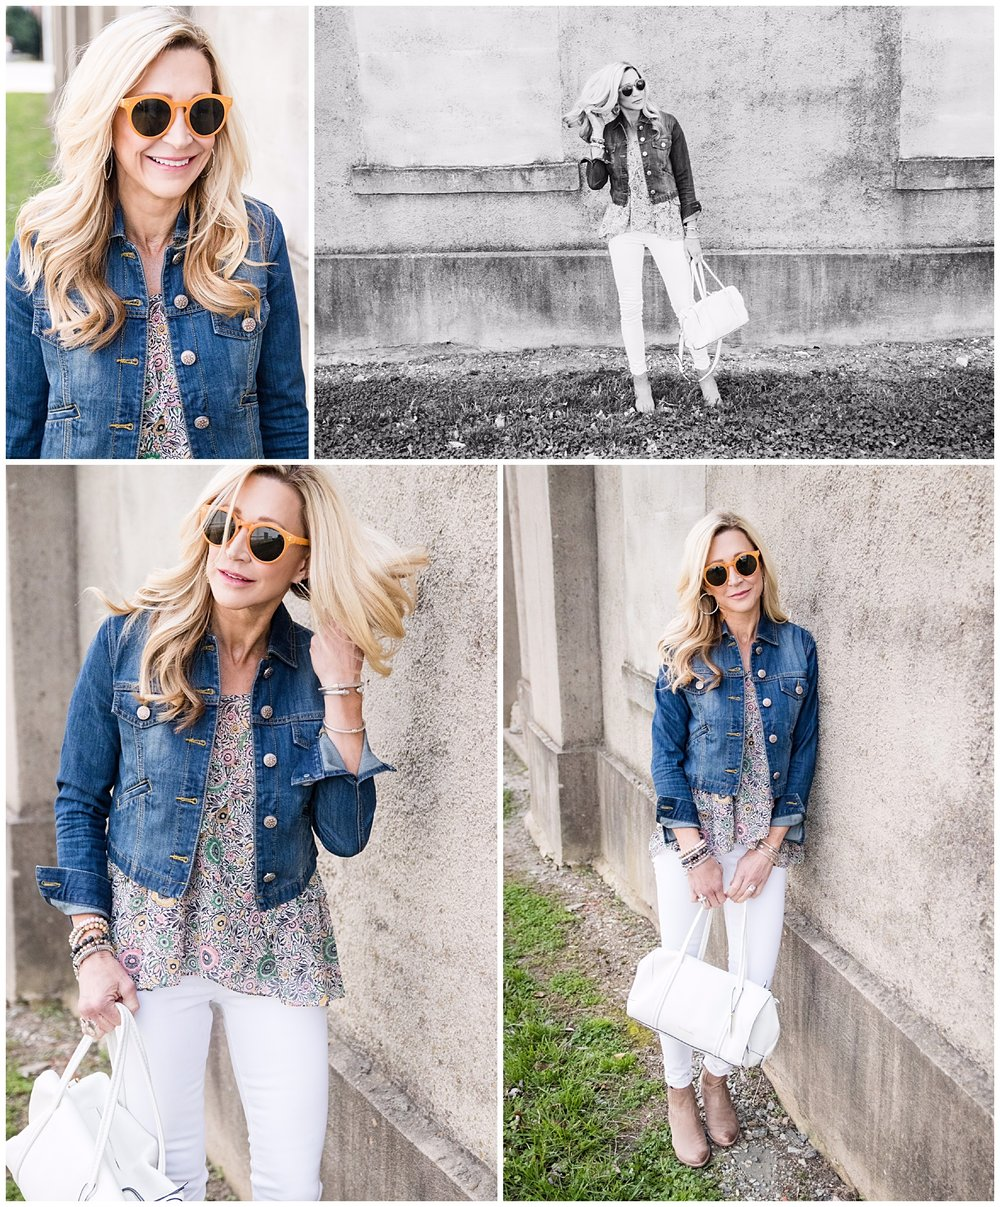 Spring Outfit Idea - Cabi jacket and top with Vera Bradley bag